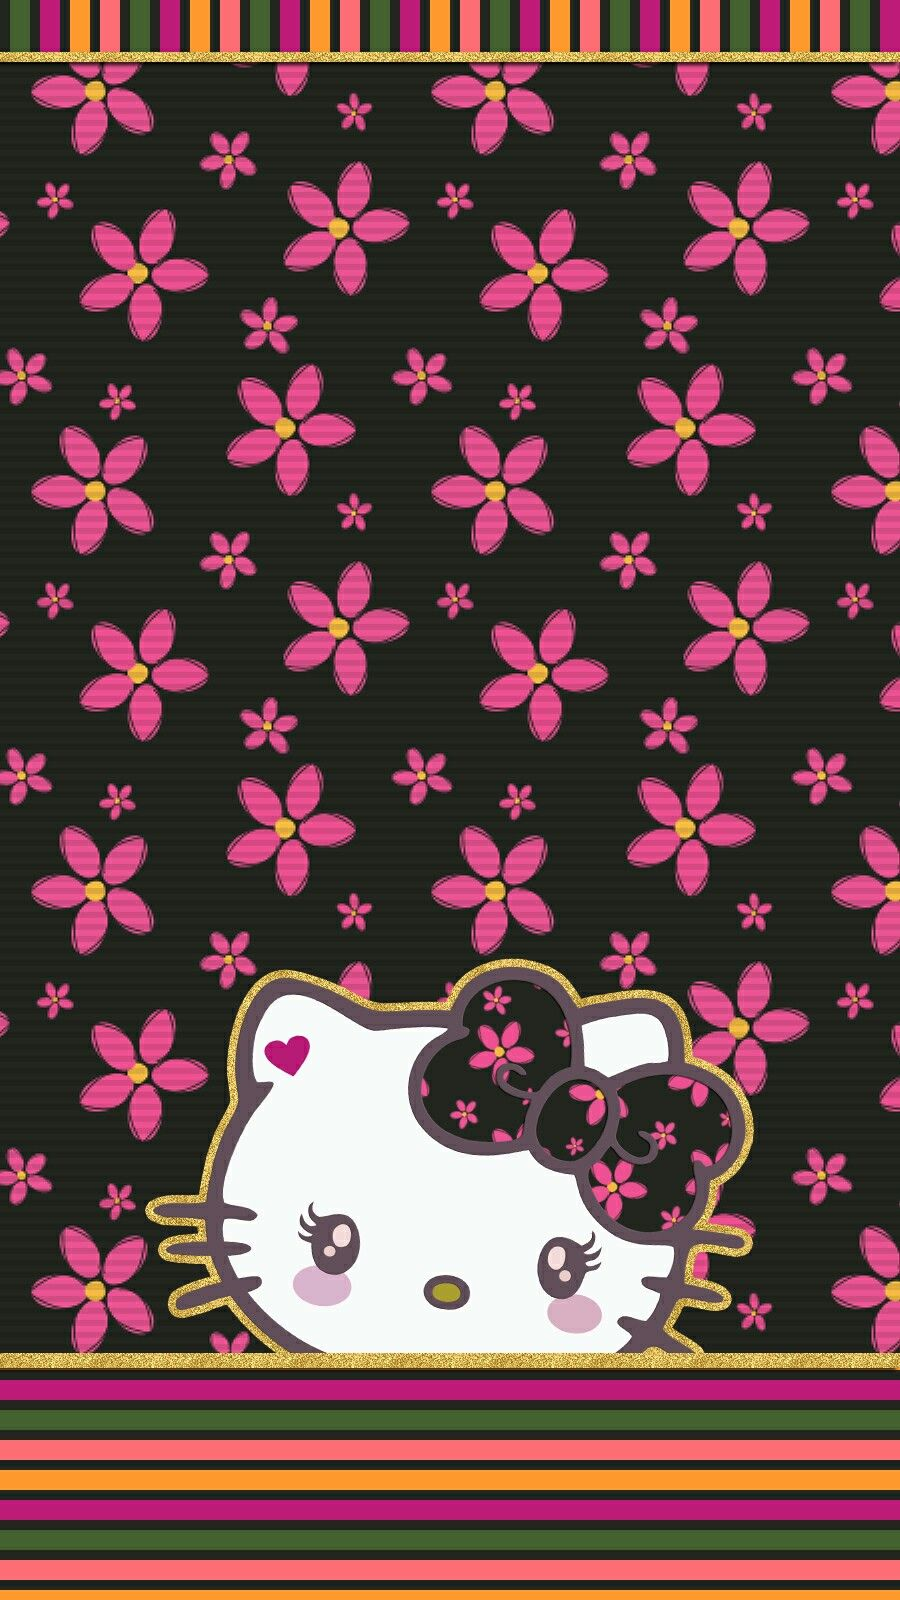 Iphone Wall Hk Tjn Hello Kitty Backgrounds Hello Kitty Wallpaper Kitty Wallpaper